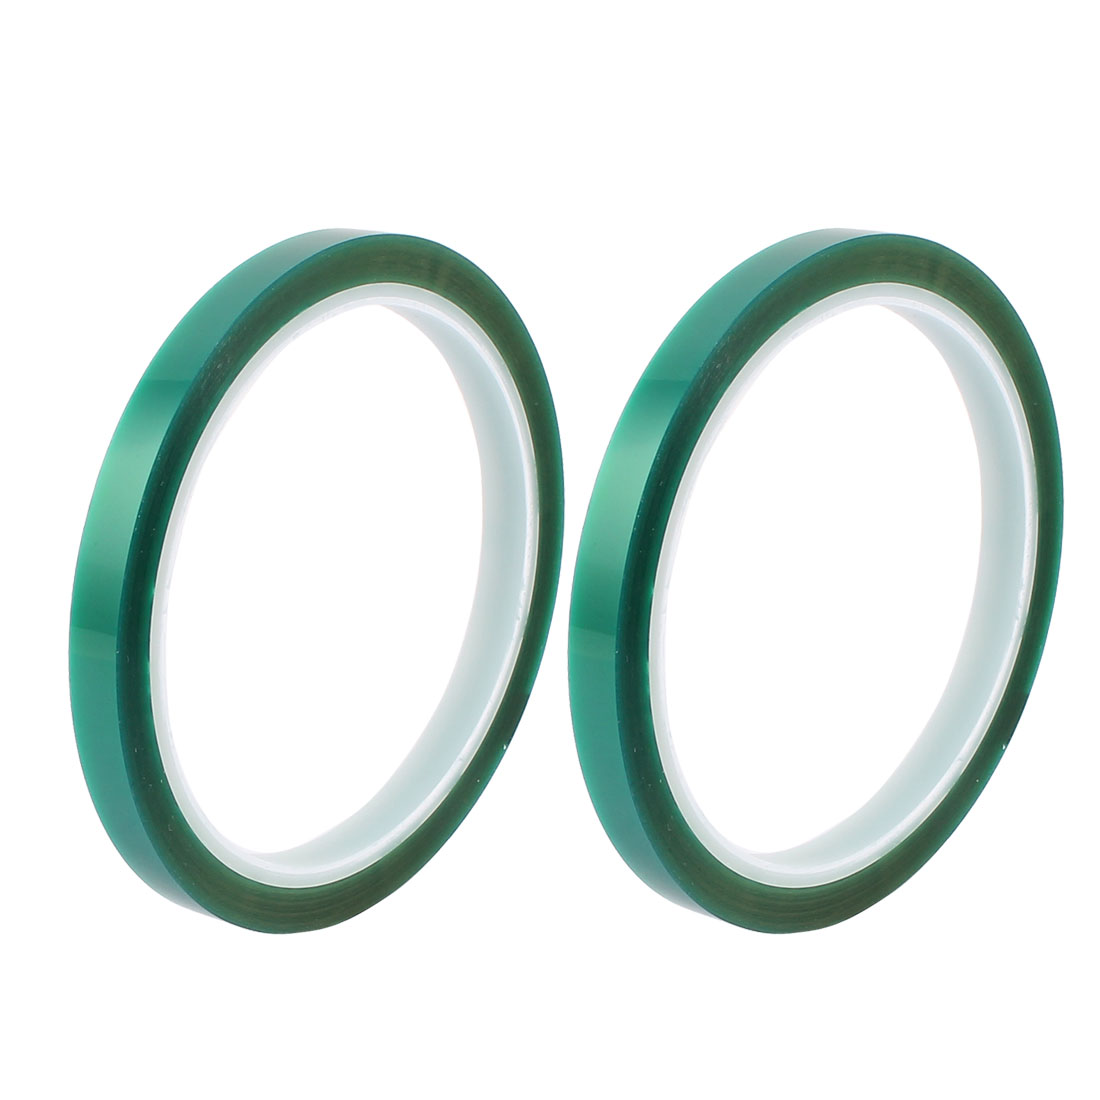 2pcs 8mm Width 33M Long Green PET High Temperature Heat Resistant PCB Solder Tape